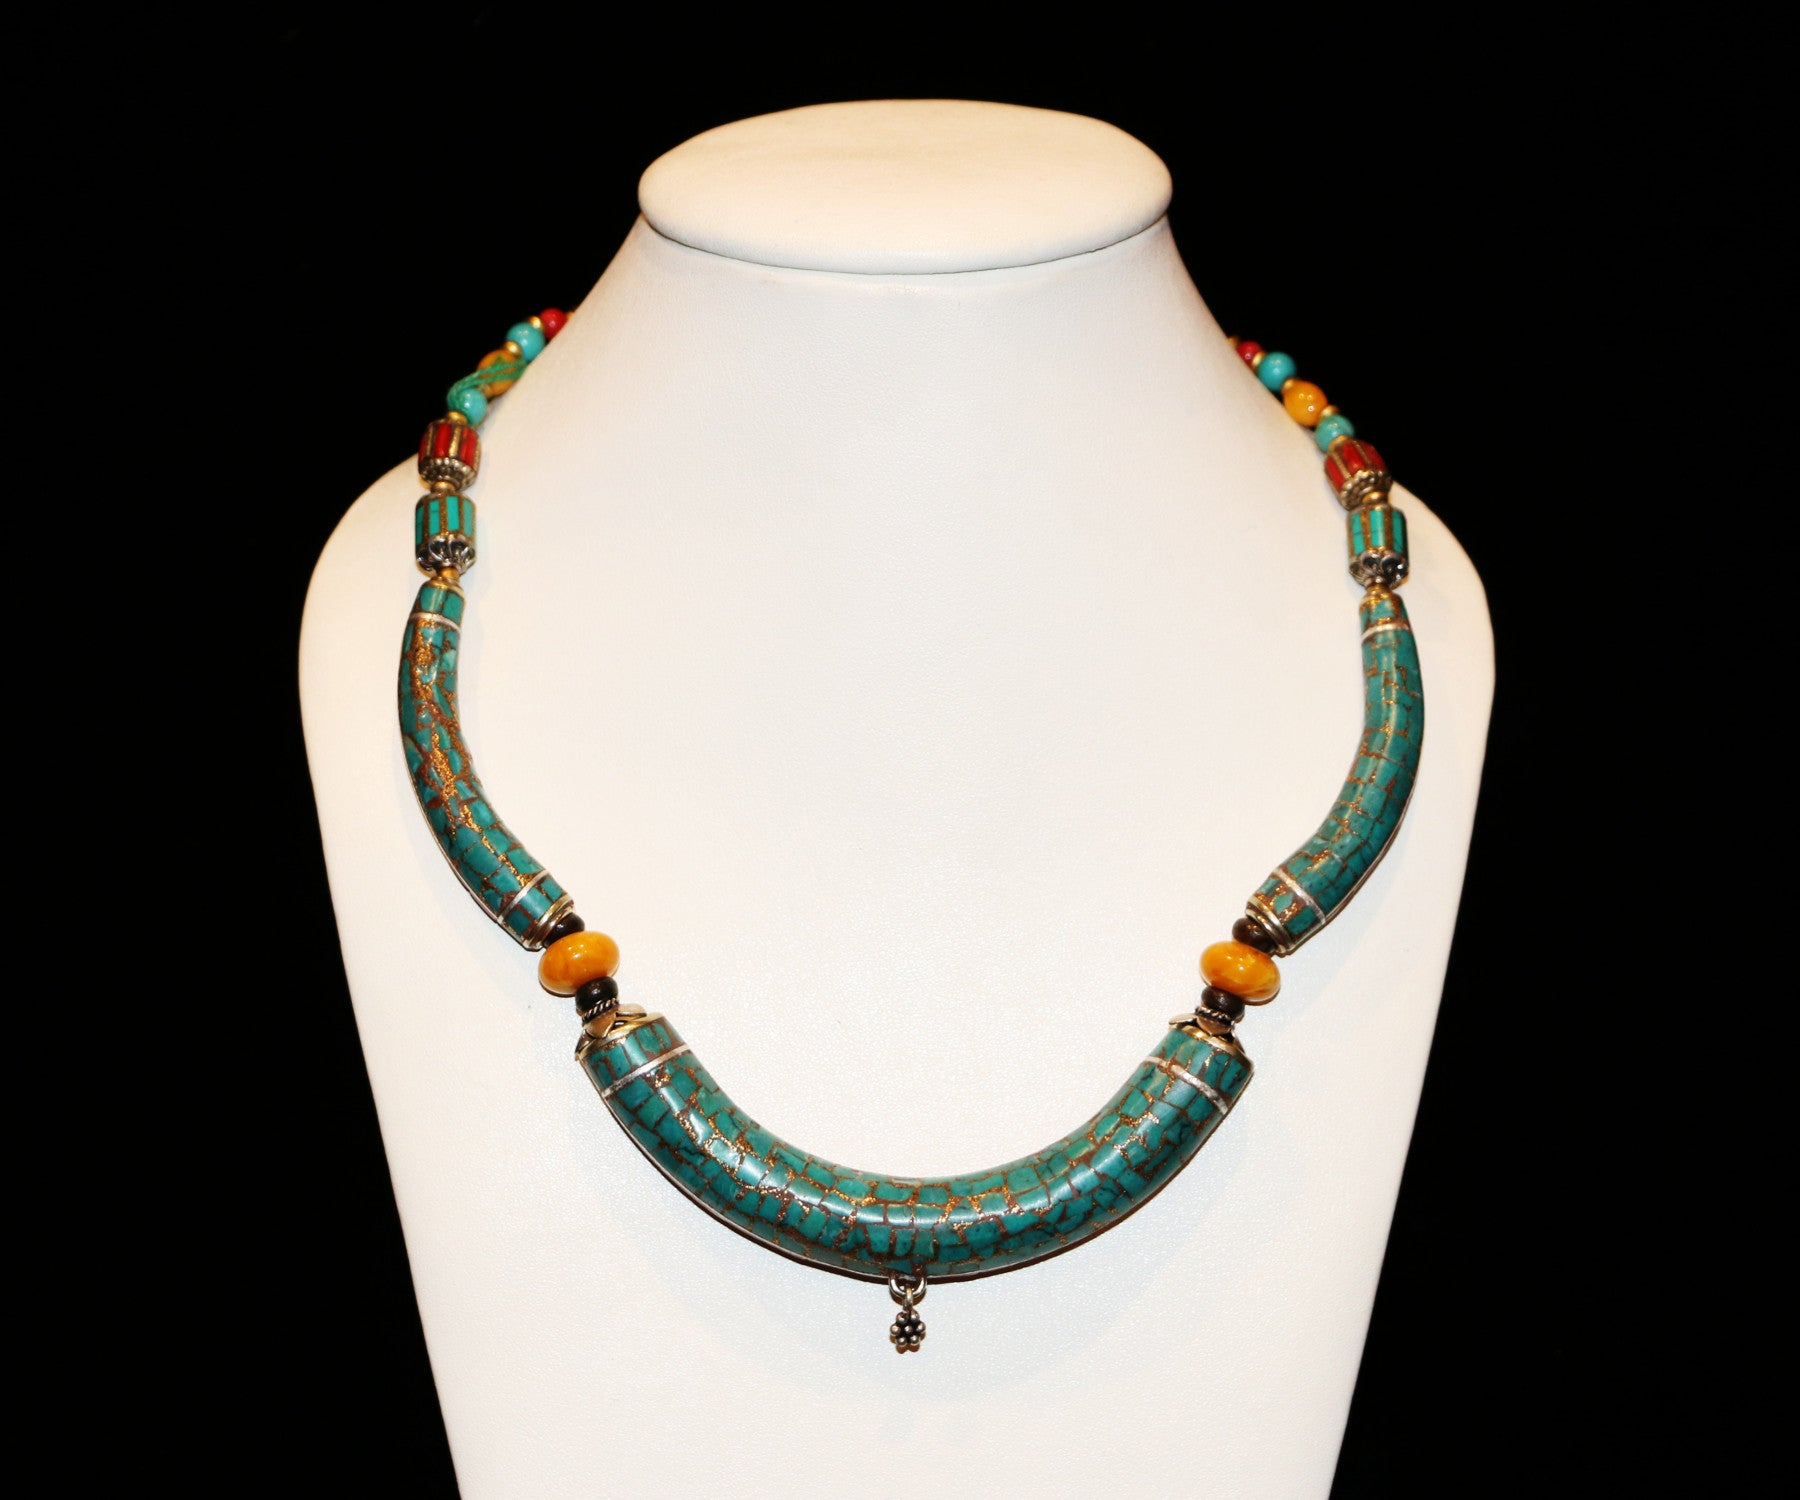 Beautiful Turquoise Necklace - Tibet Arts & Healing